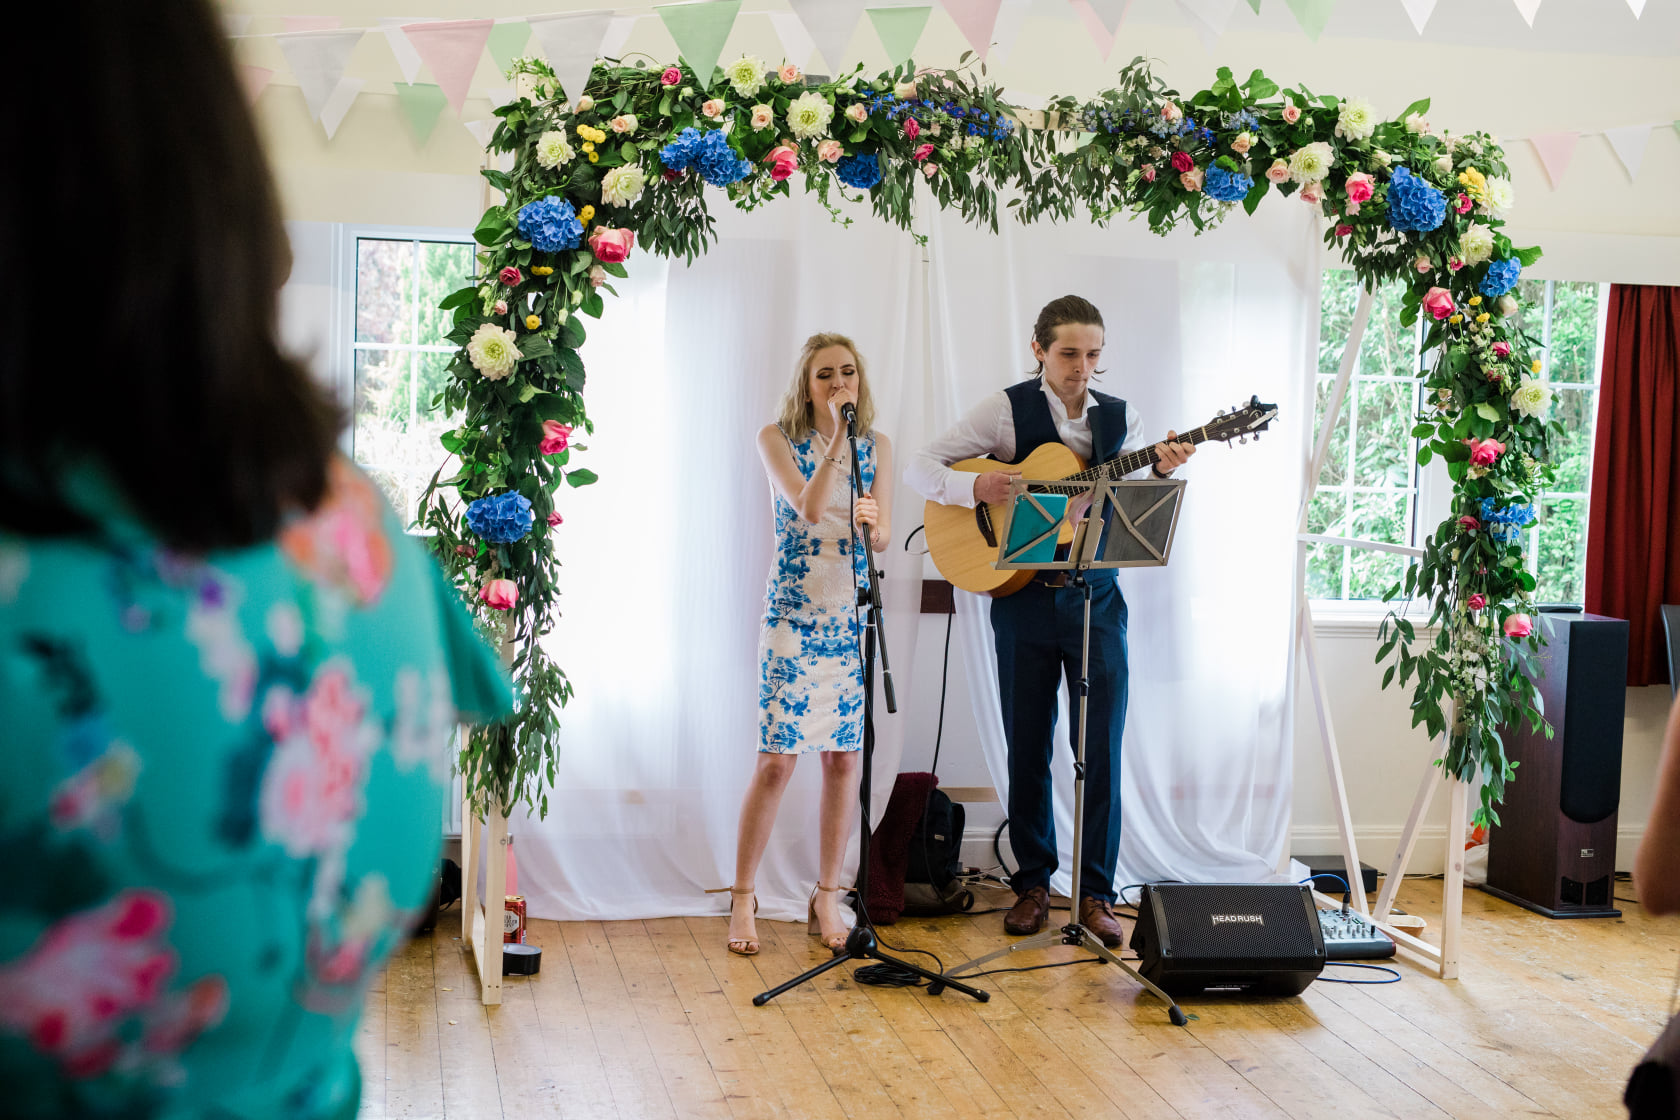 Promo The Note Changers Vocal Guitar Duo West Yorkshire